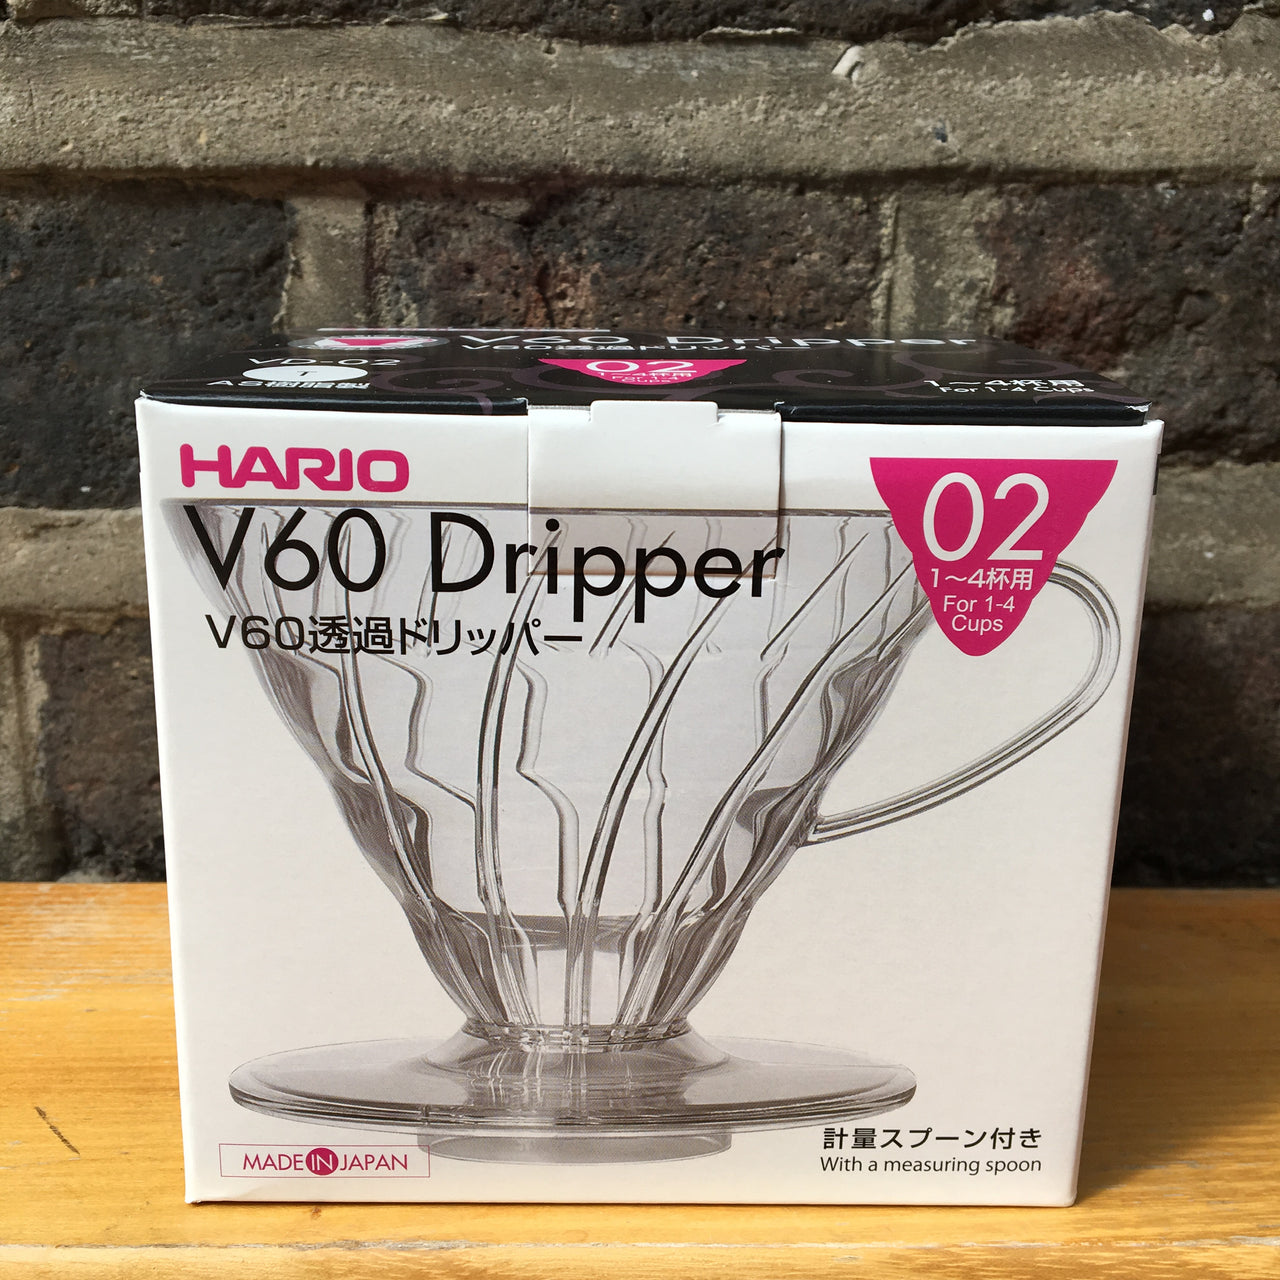 Hario - V60 Double Plastic Brewer